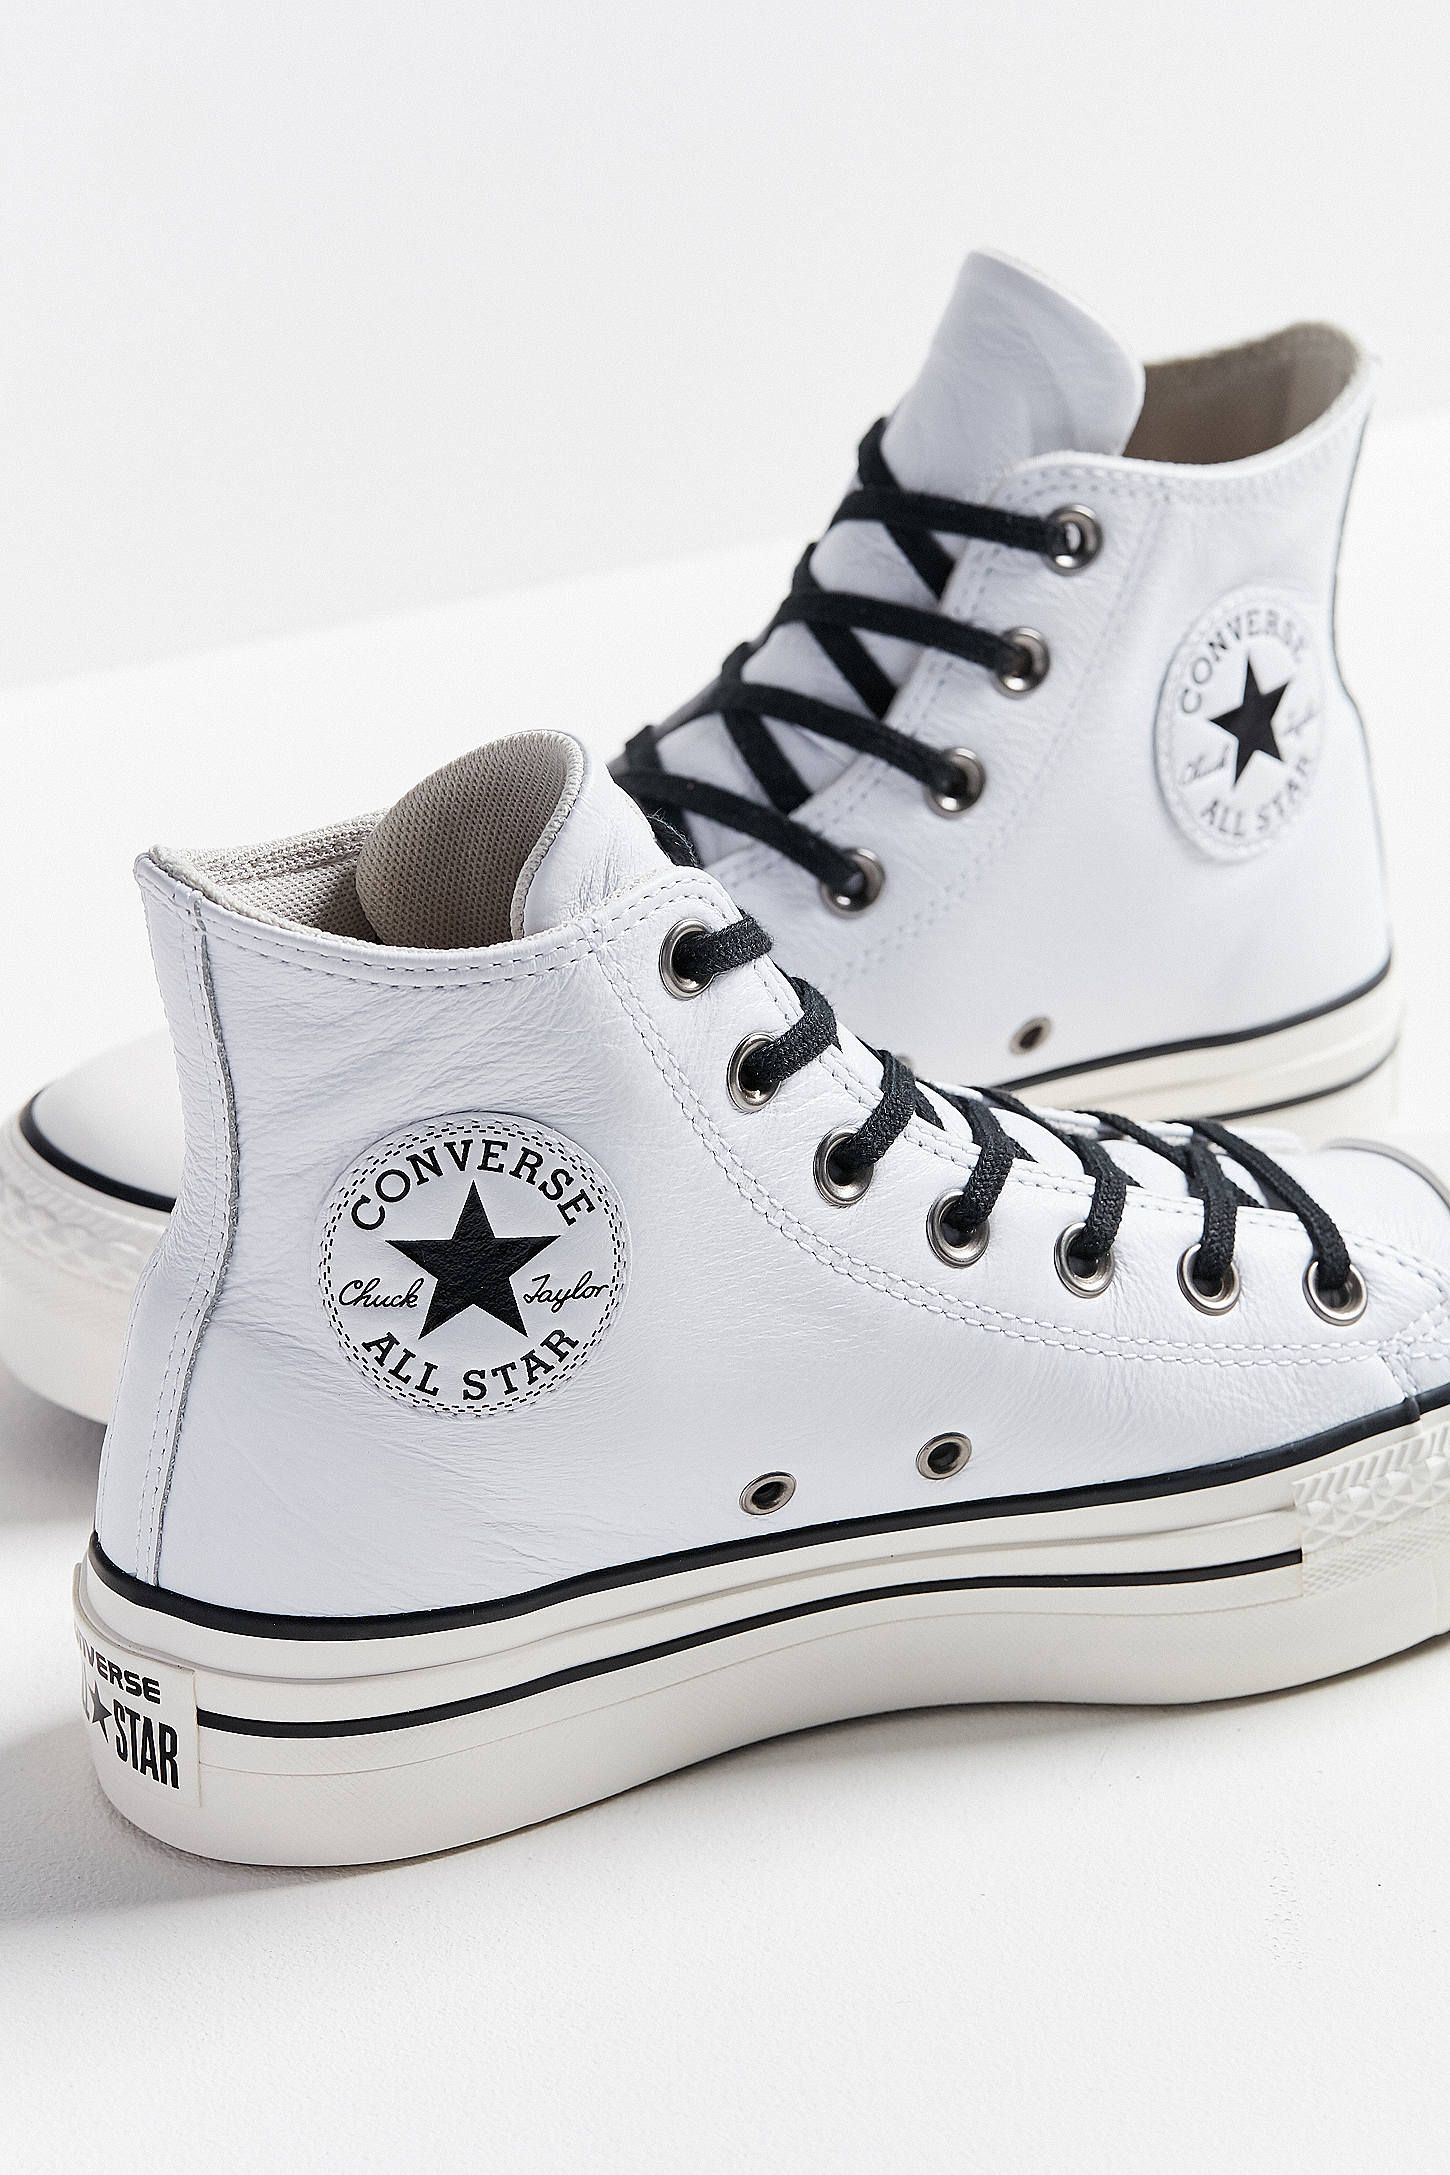 d1a8d980cea5d8 Slide View  5  Converse Chuck Taylor All Star Platform High Top Sneaker